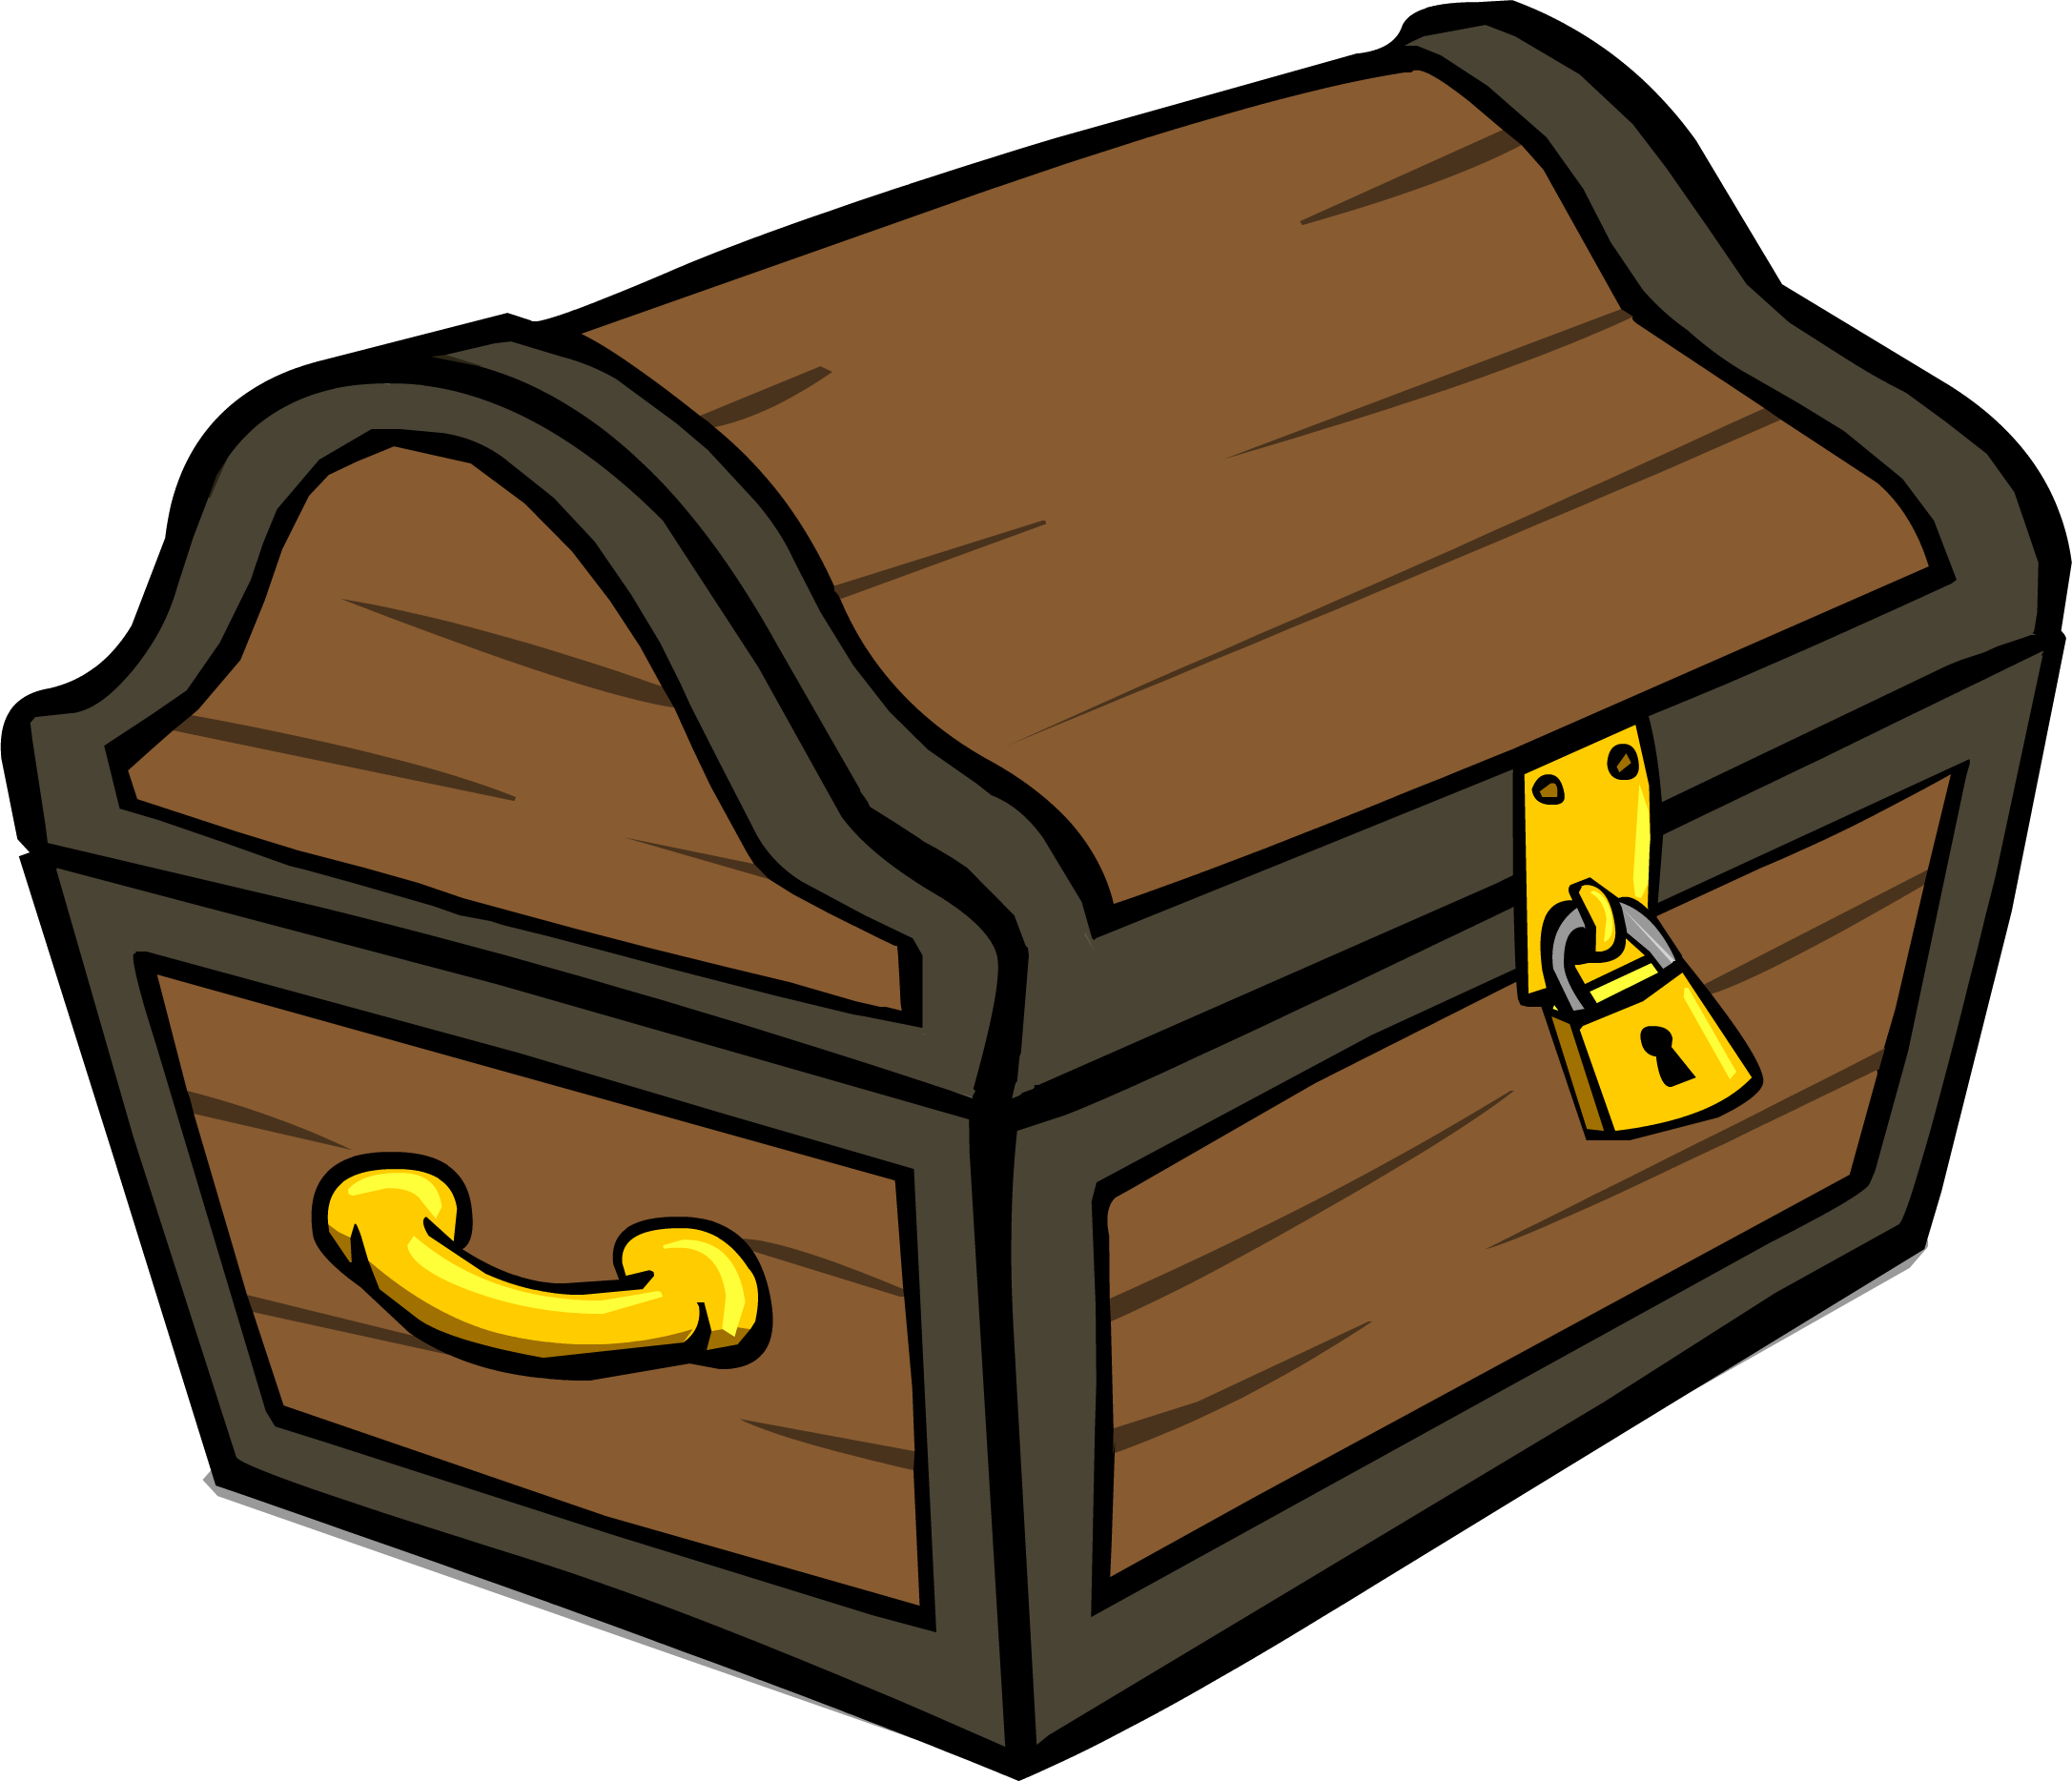 Transparent heavenly father clipart - Treasure Chest Id 305 Sprite 028 - Cartoon Treasure Chest Transparent Background